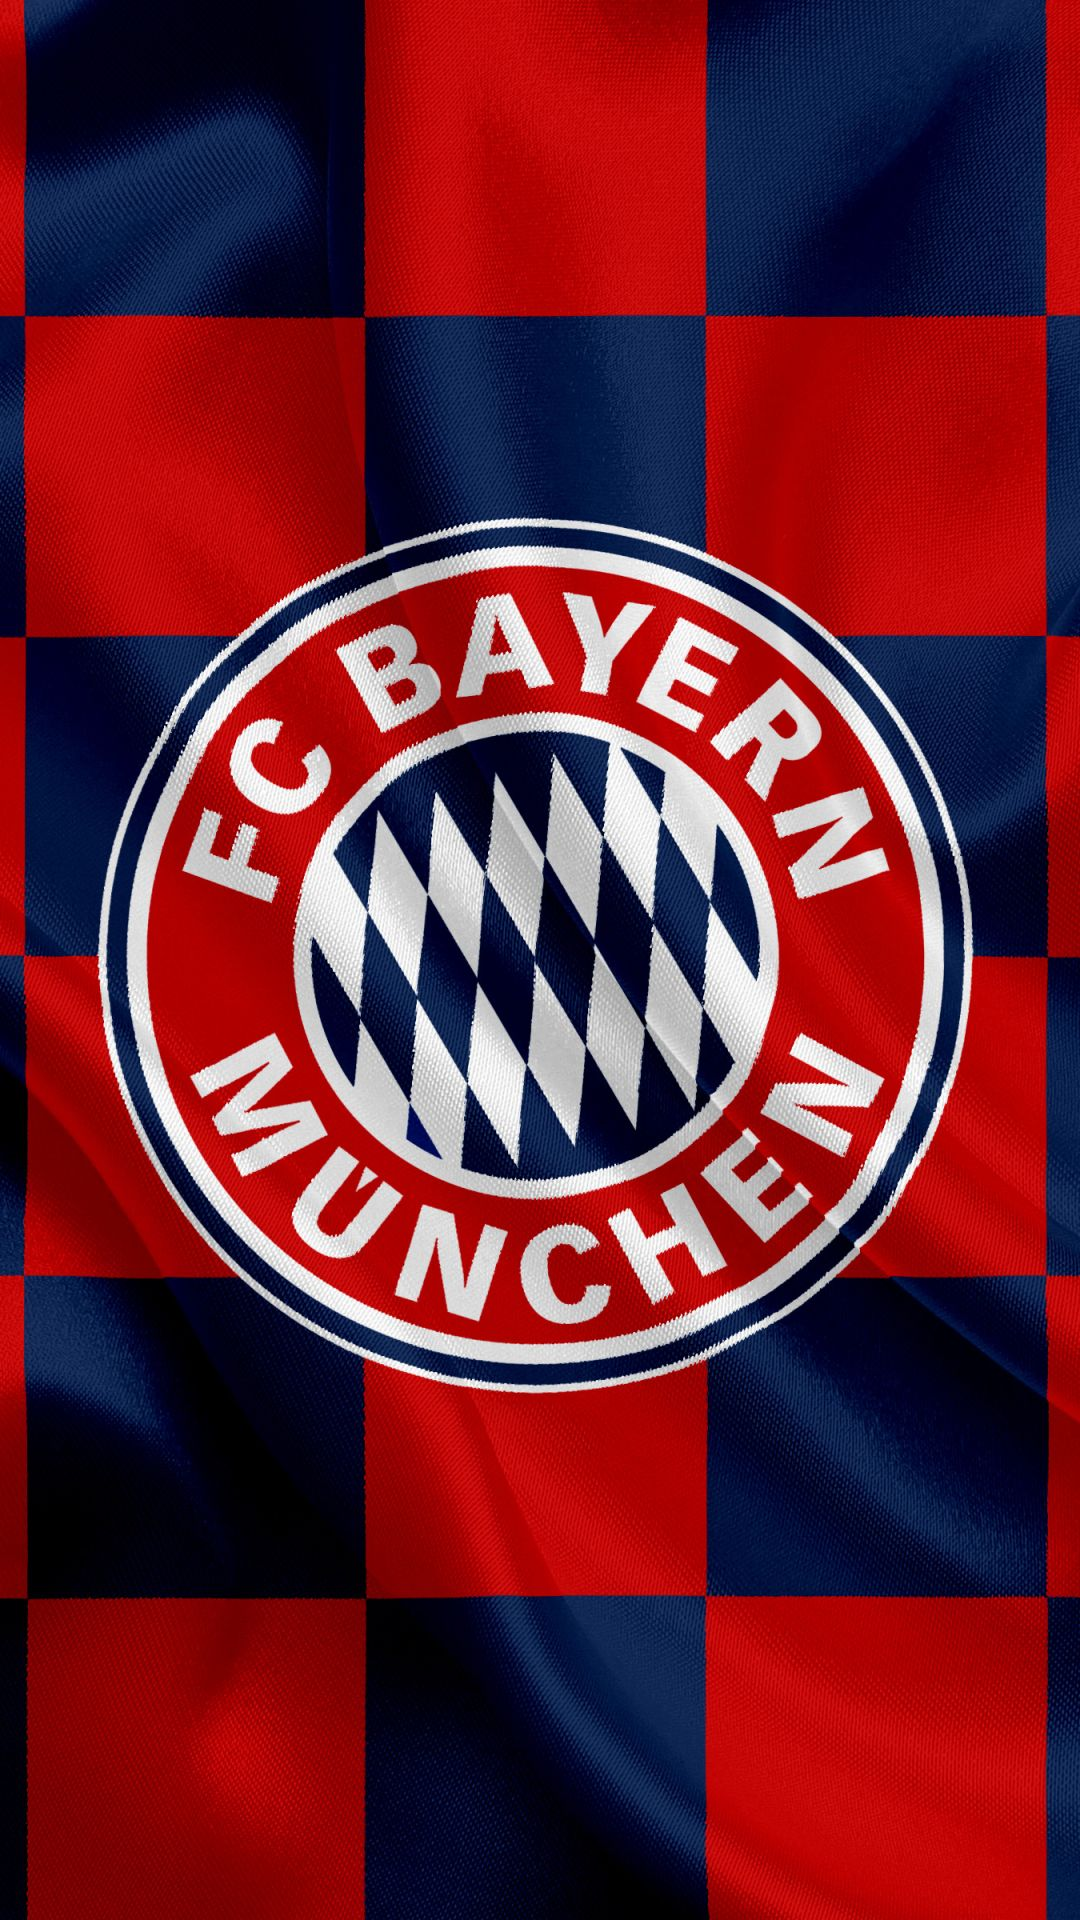 Bayern Munich 2020 Wallpapers Wallpaper Cave All iphone wallpapers >all albums >the awesome collection of munich iphone wallpapers a collection of the best 9 munich iphone wallpapers and backgrounds available for free download. bayern munich 2020 wallpapers